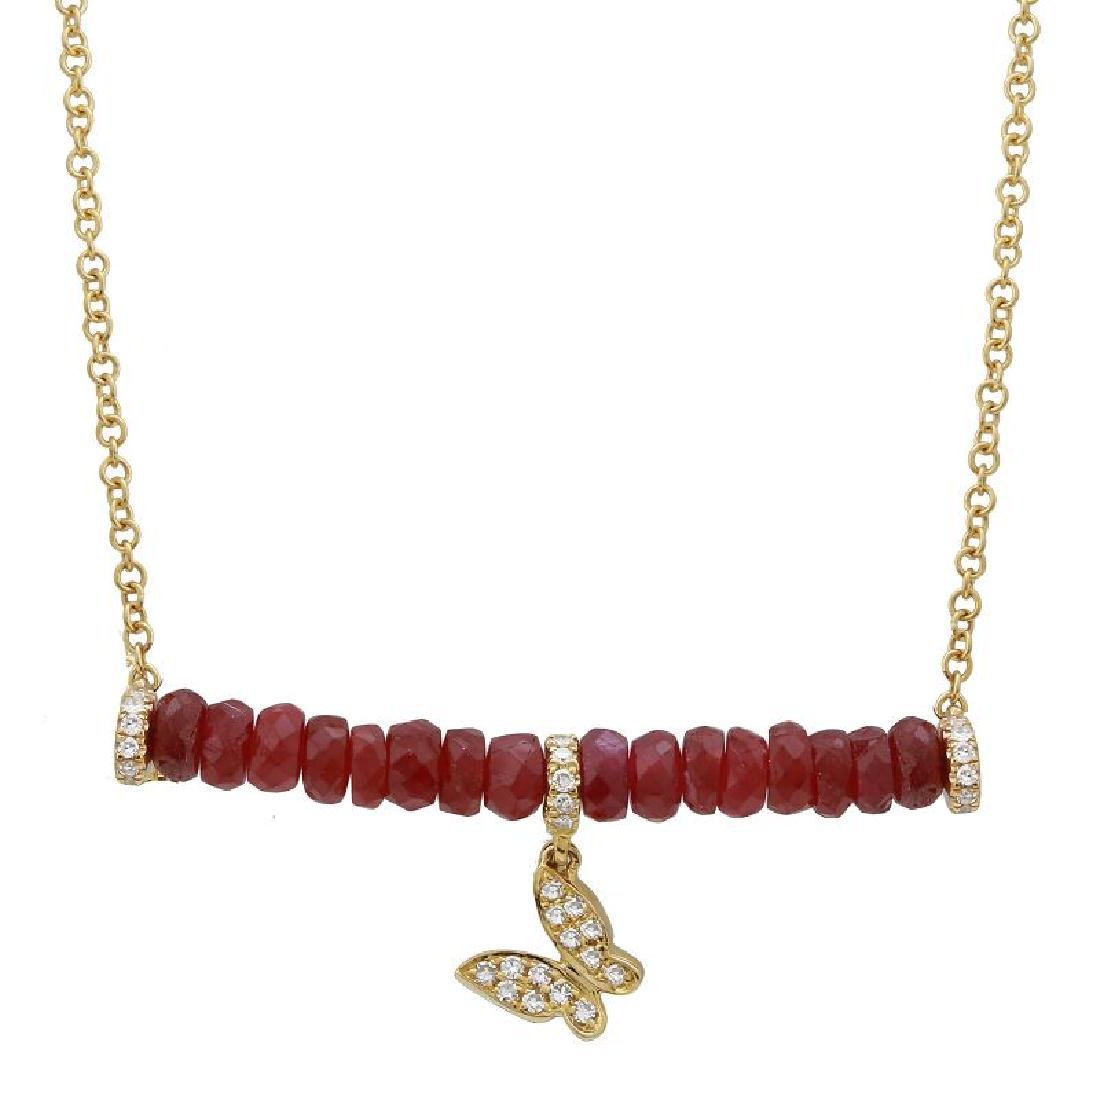 14KT Yellow Gold Gemstone Necklace